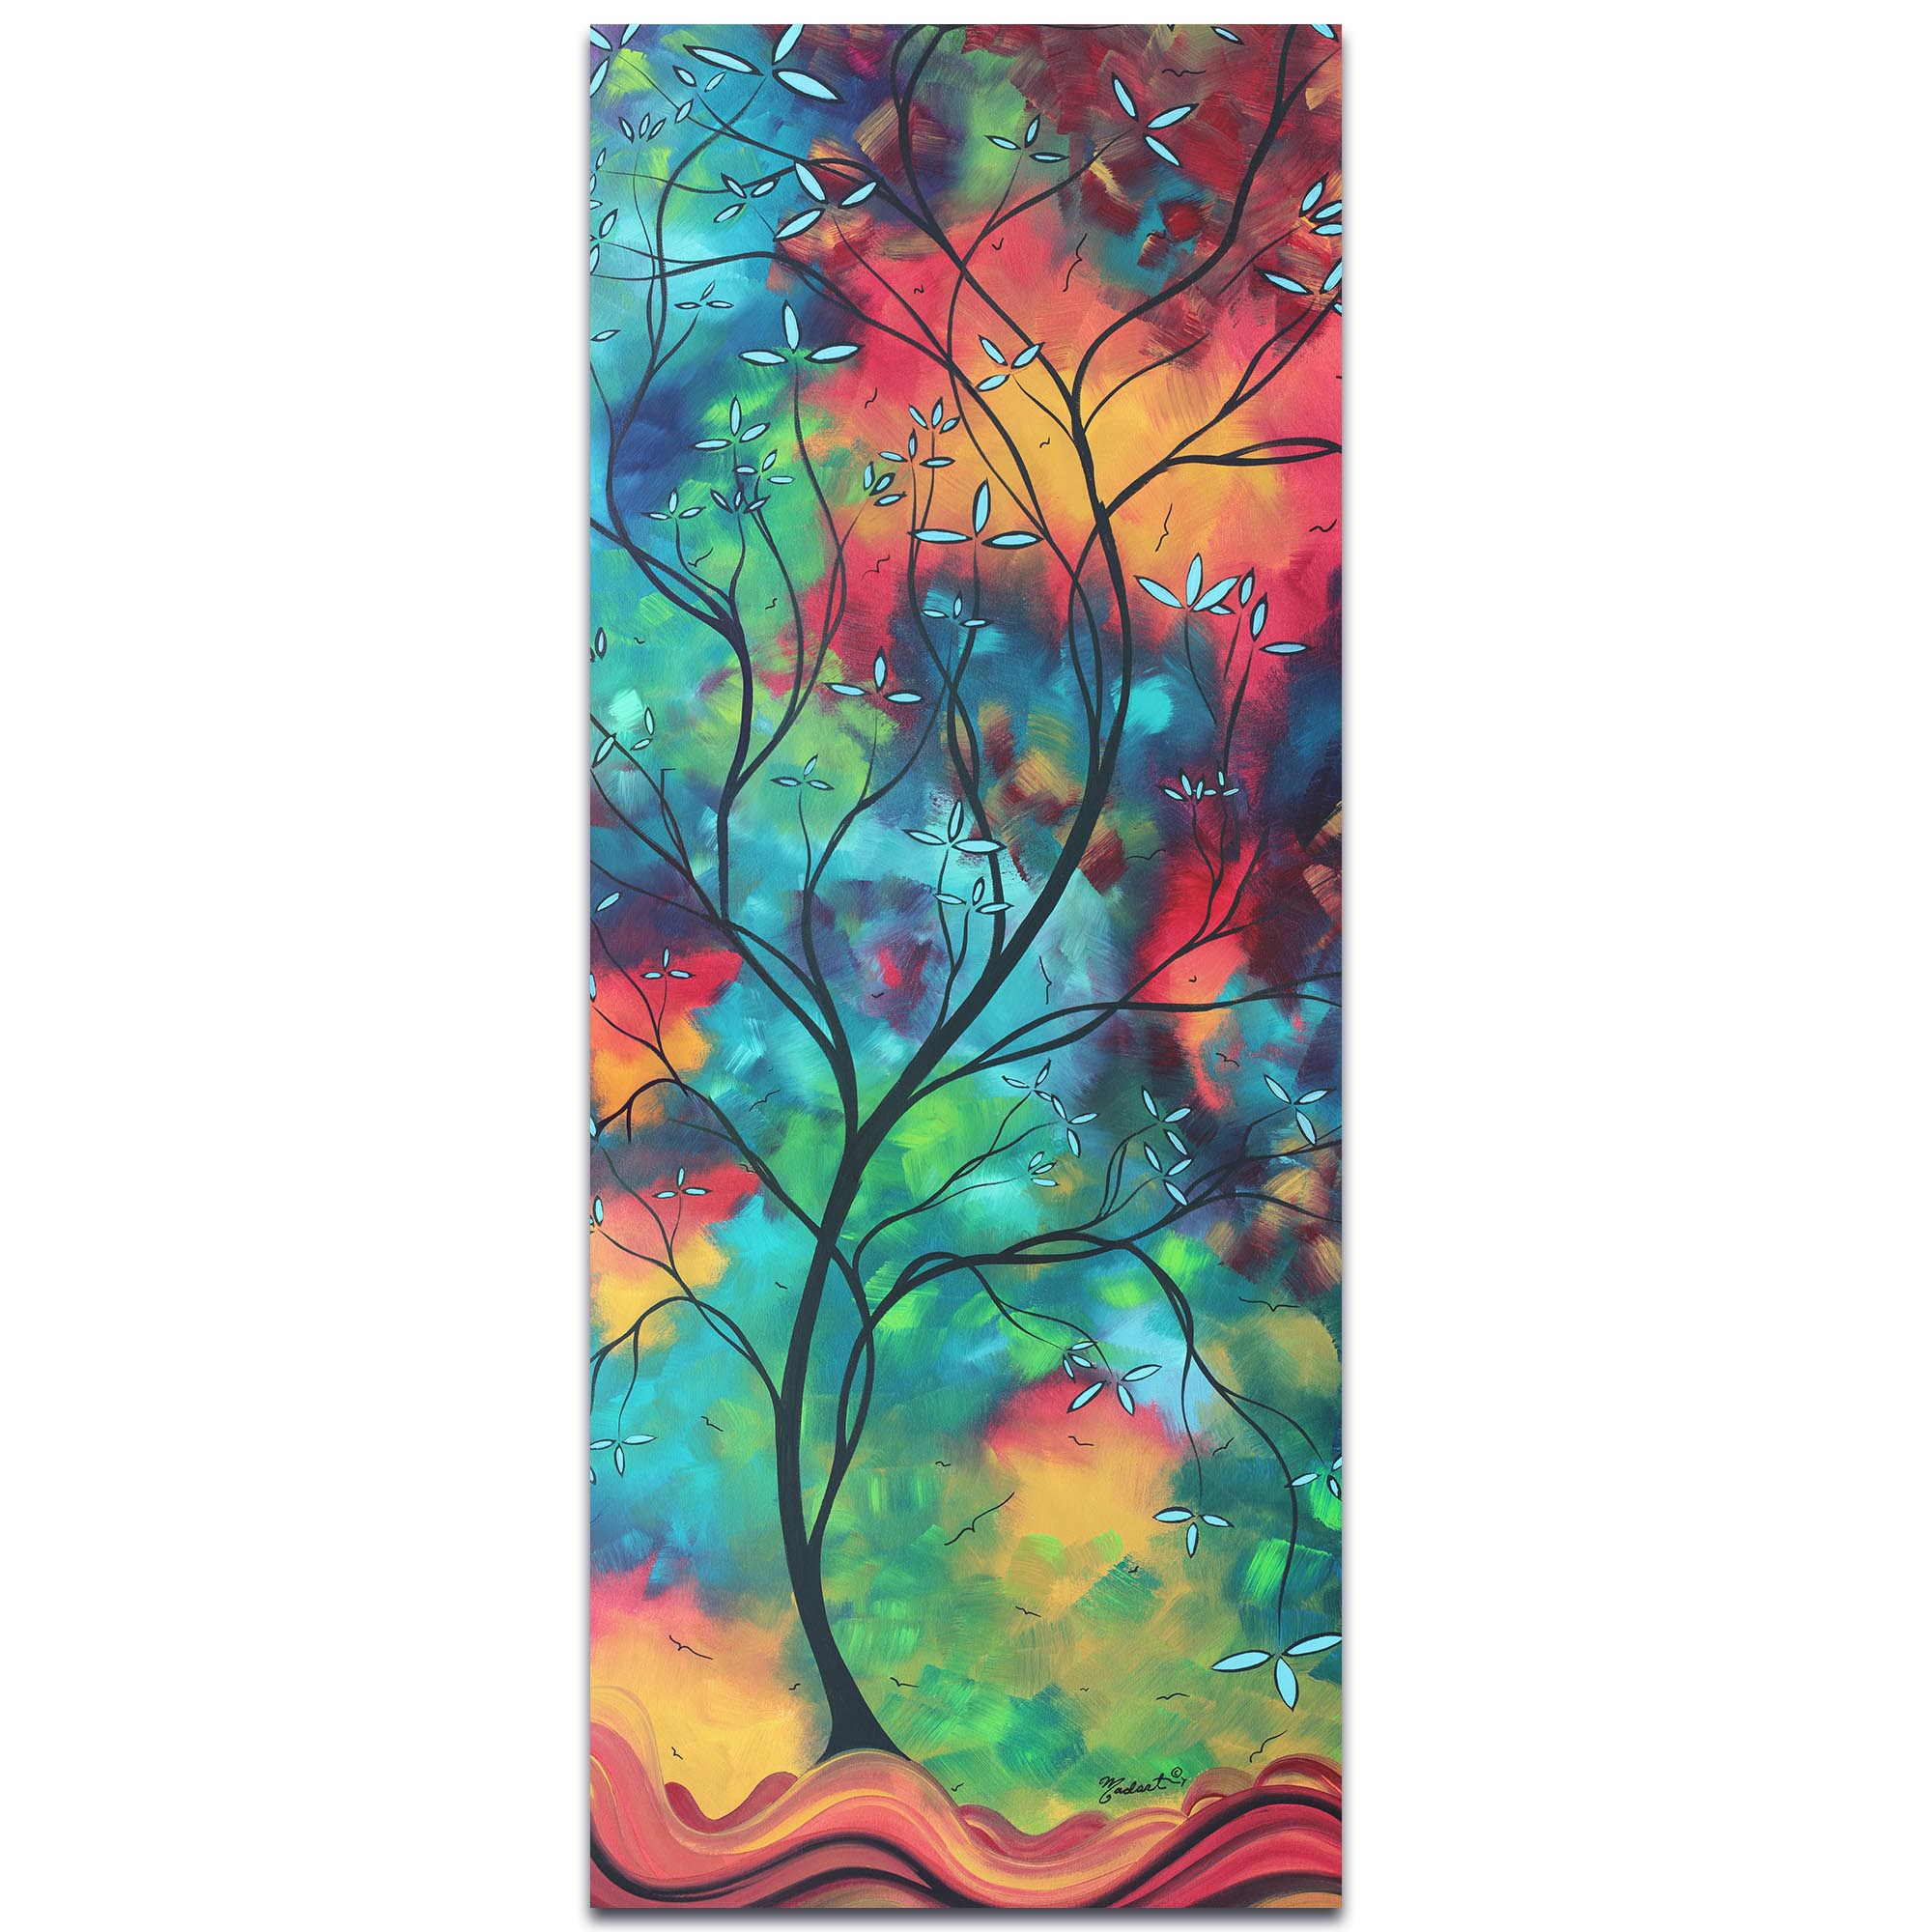 Colored Inspiration By Megan Duncanson Landscape Painting On Metal Or Acrylic